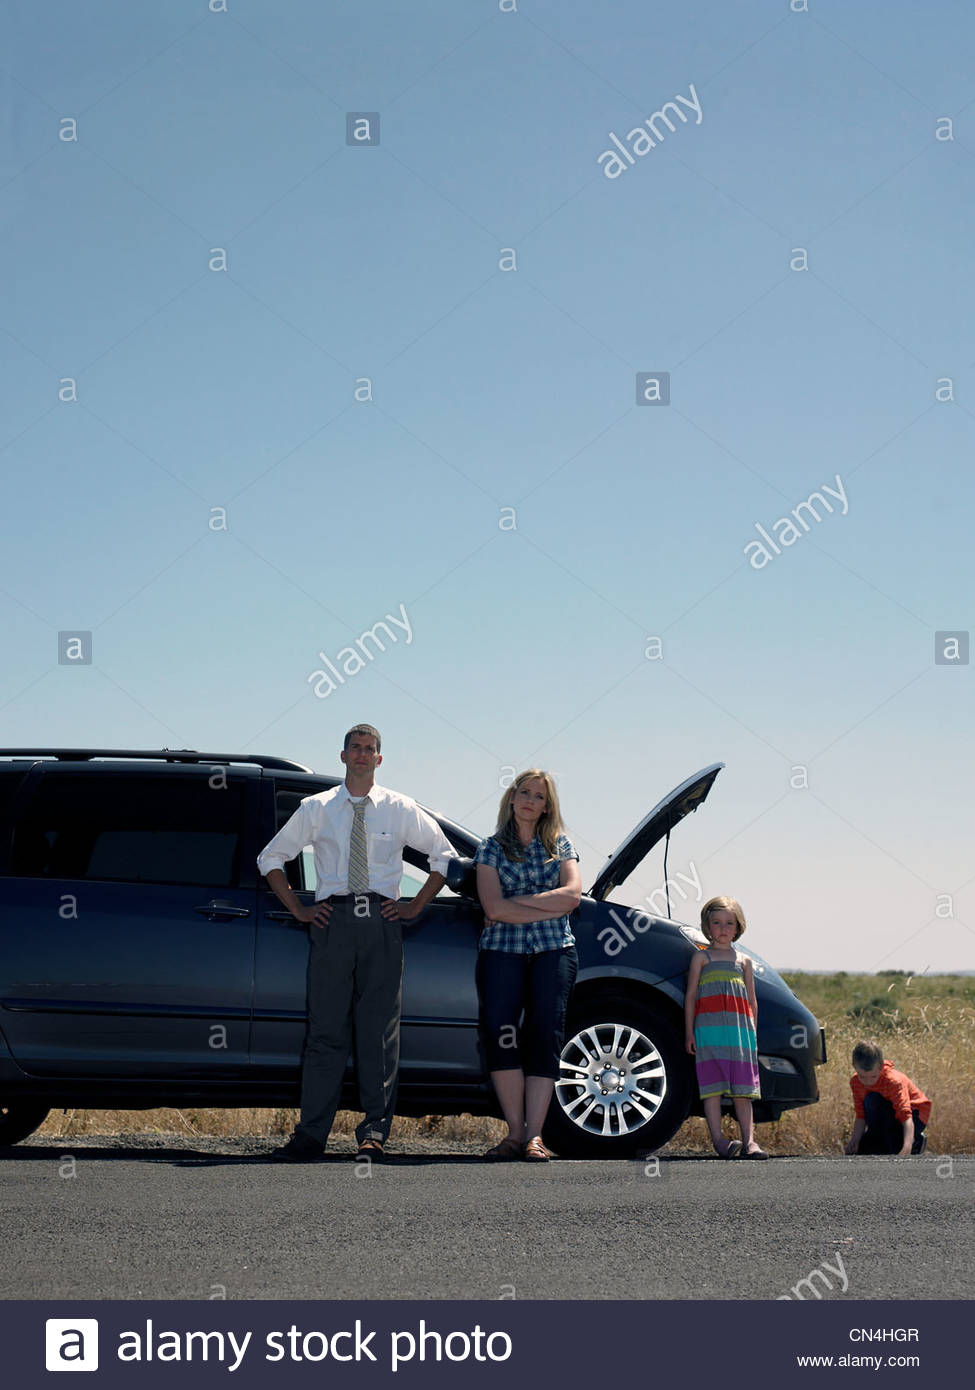 Family at roadside with broken down car - Stock Image